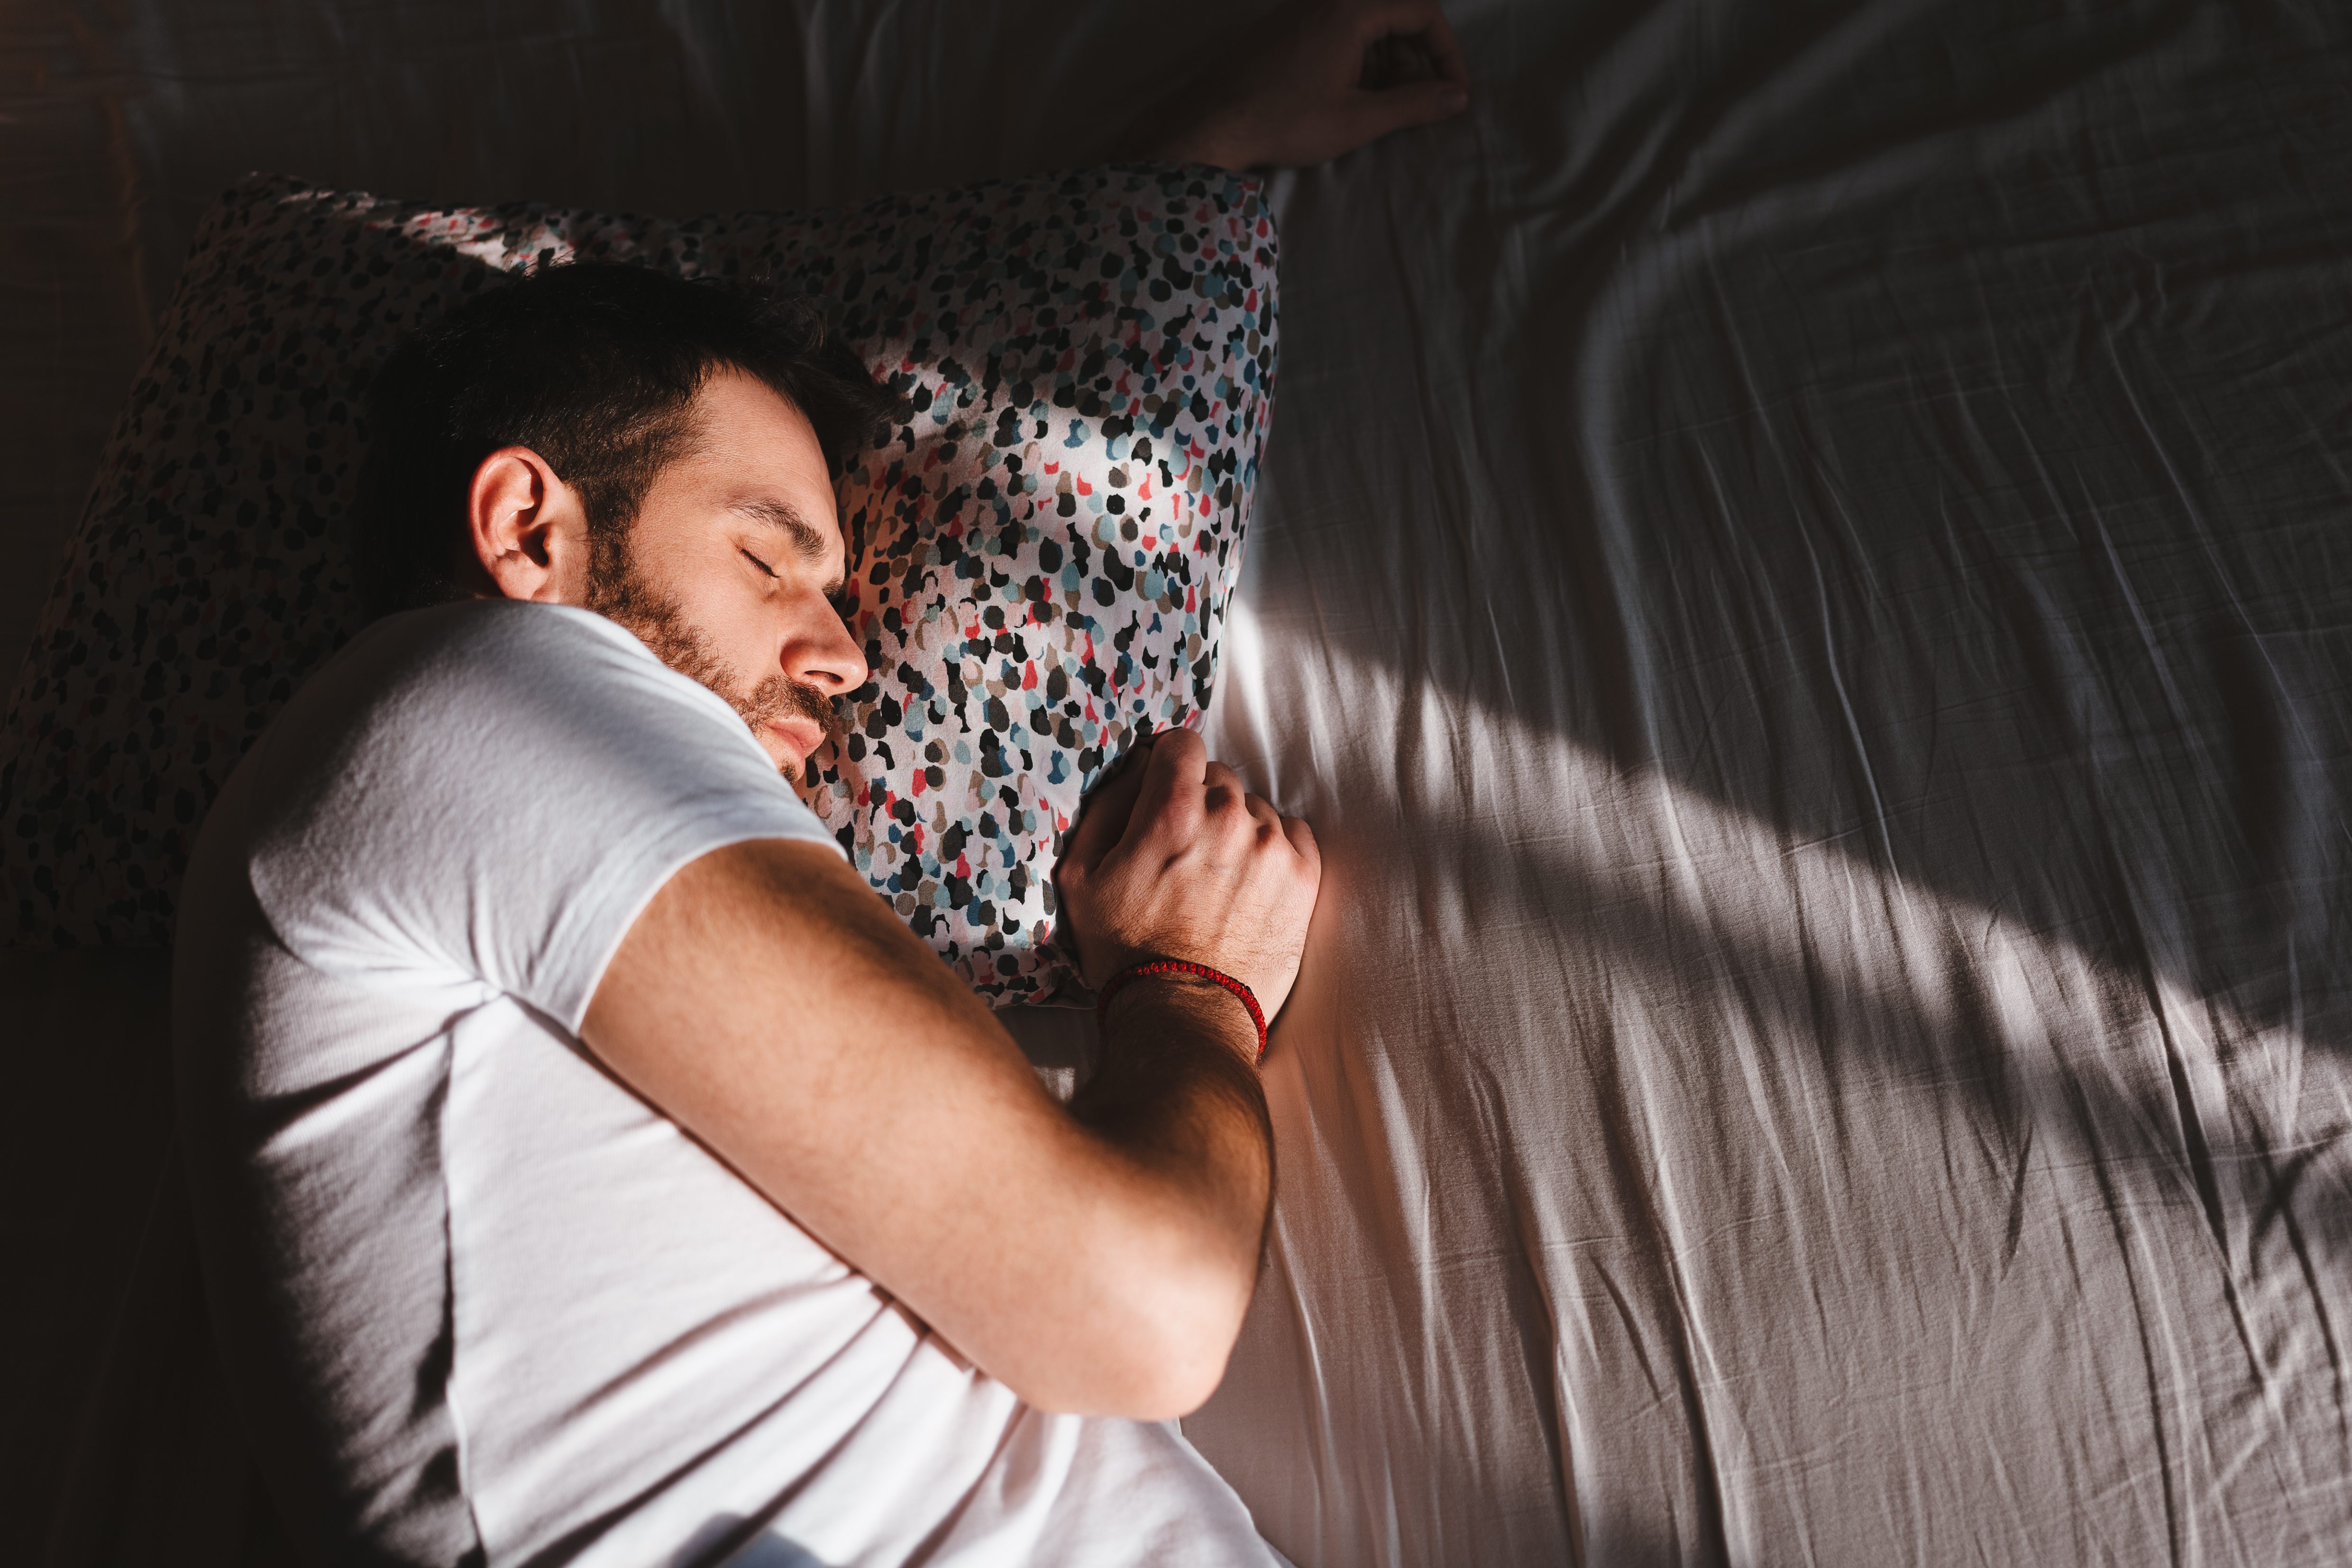 World Health Day: the importance of sleep and mental health